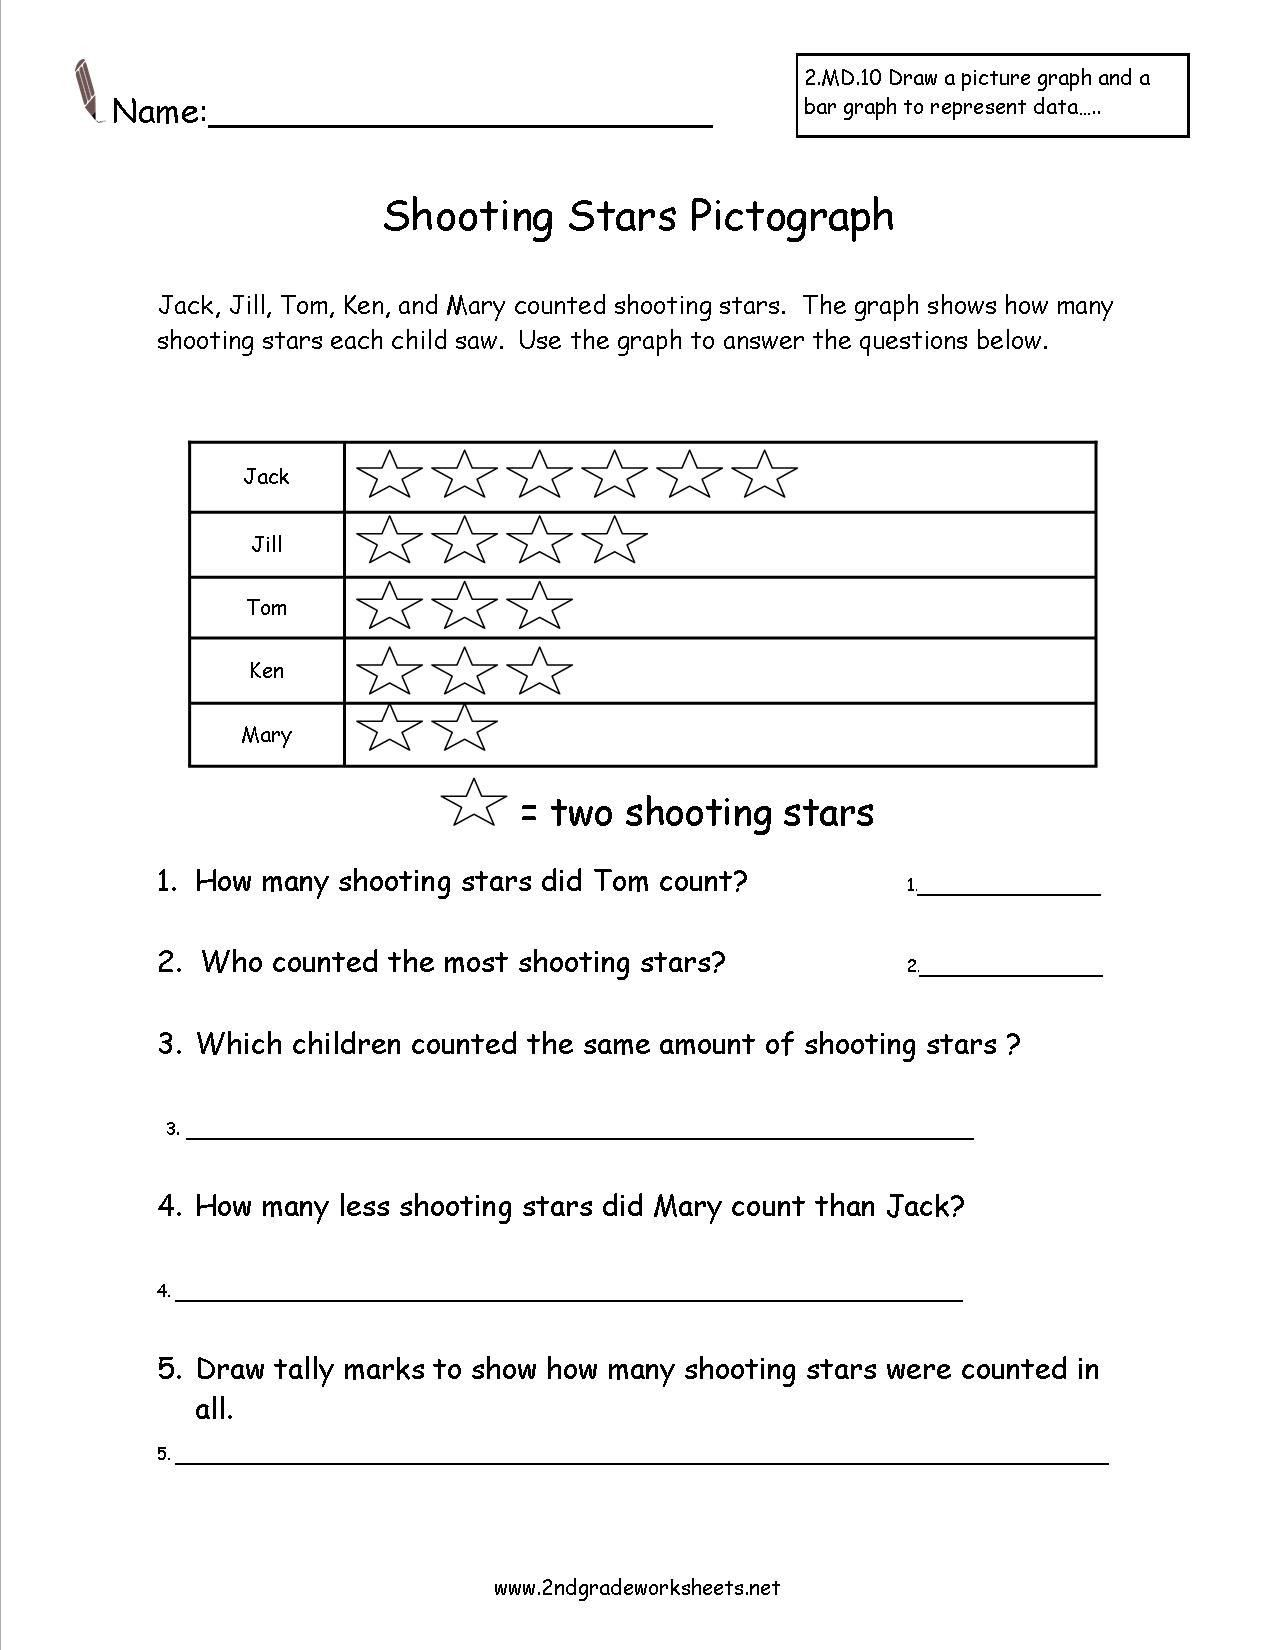 small resolution of Pictograph Worksheets 2nd Grade Shooting Stars Pictograph Worksheet   Third grade  worksheets